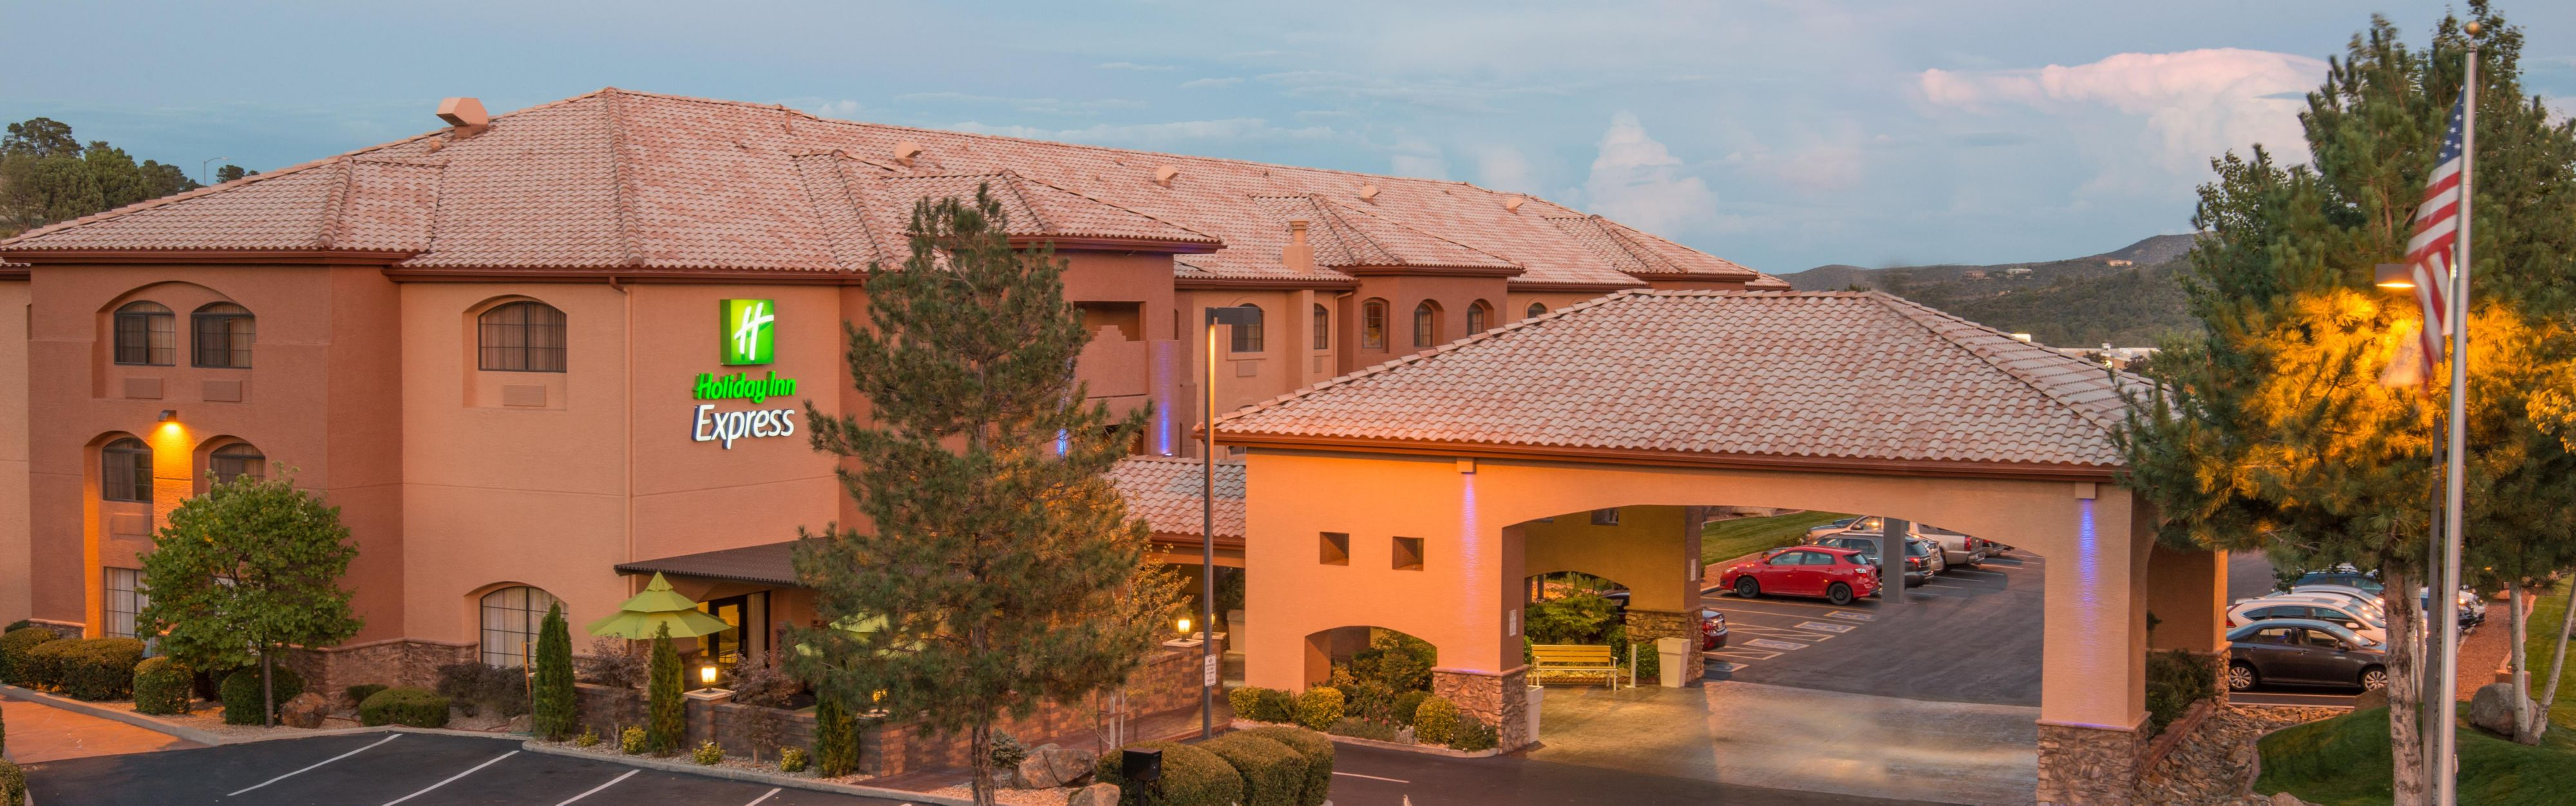 Motels In Prescott Az